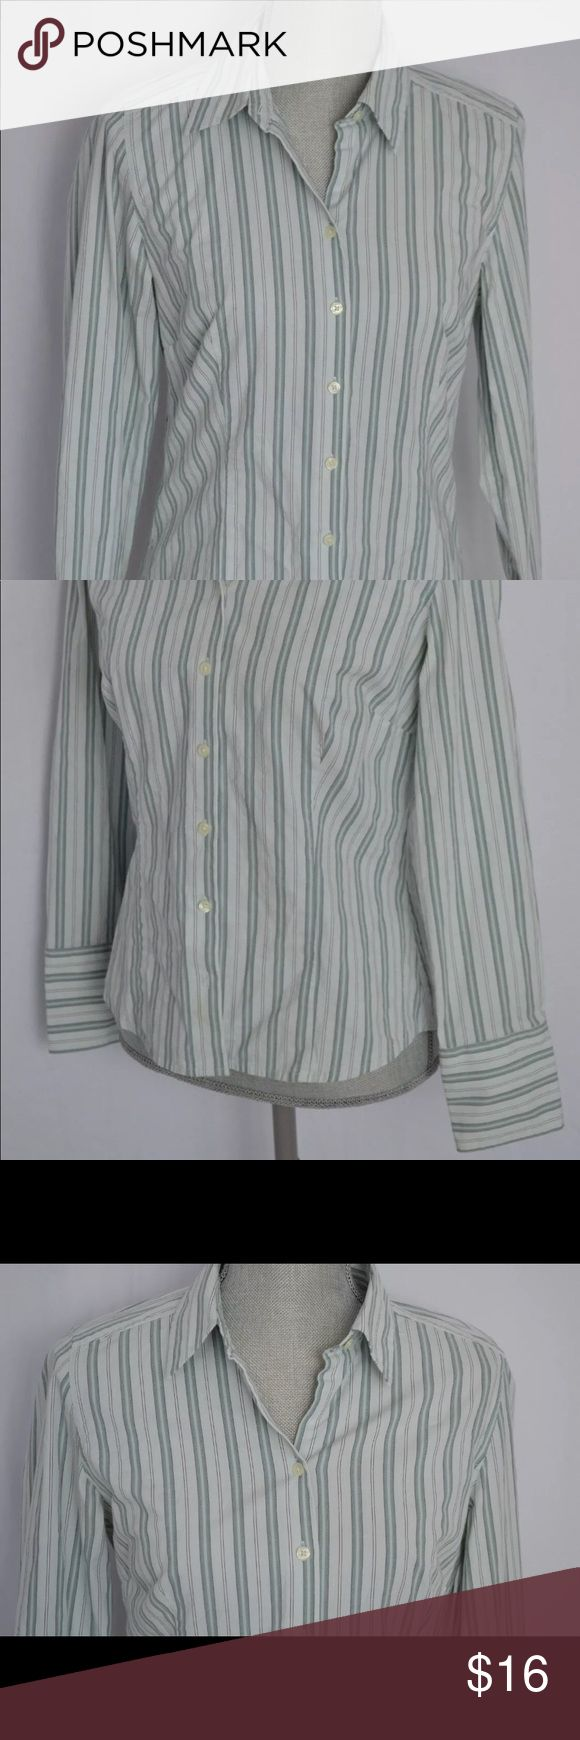 """Ann Taylor striped mint green shirt in size 8 An excellent used condition button down striped mint green shirt by Ann Taylor in size 8.  Dimensions:-  Length:- 24.25"""" Bust:- 18.25""""  Thanks for viewing! Ann Taylor Tops Button Down Shirts"""